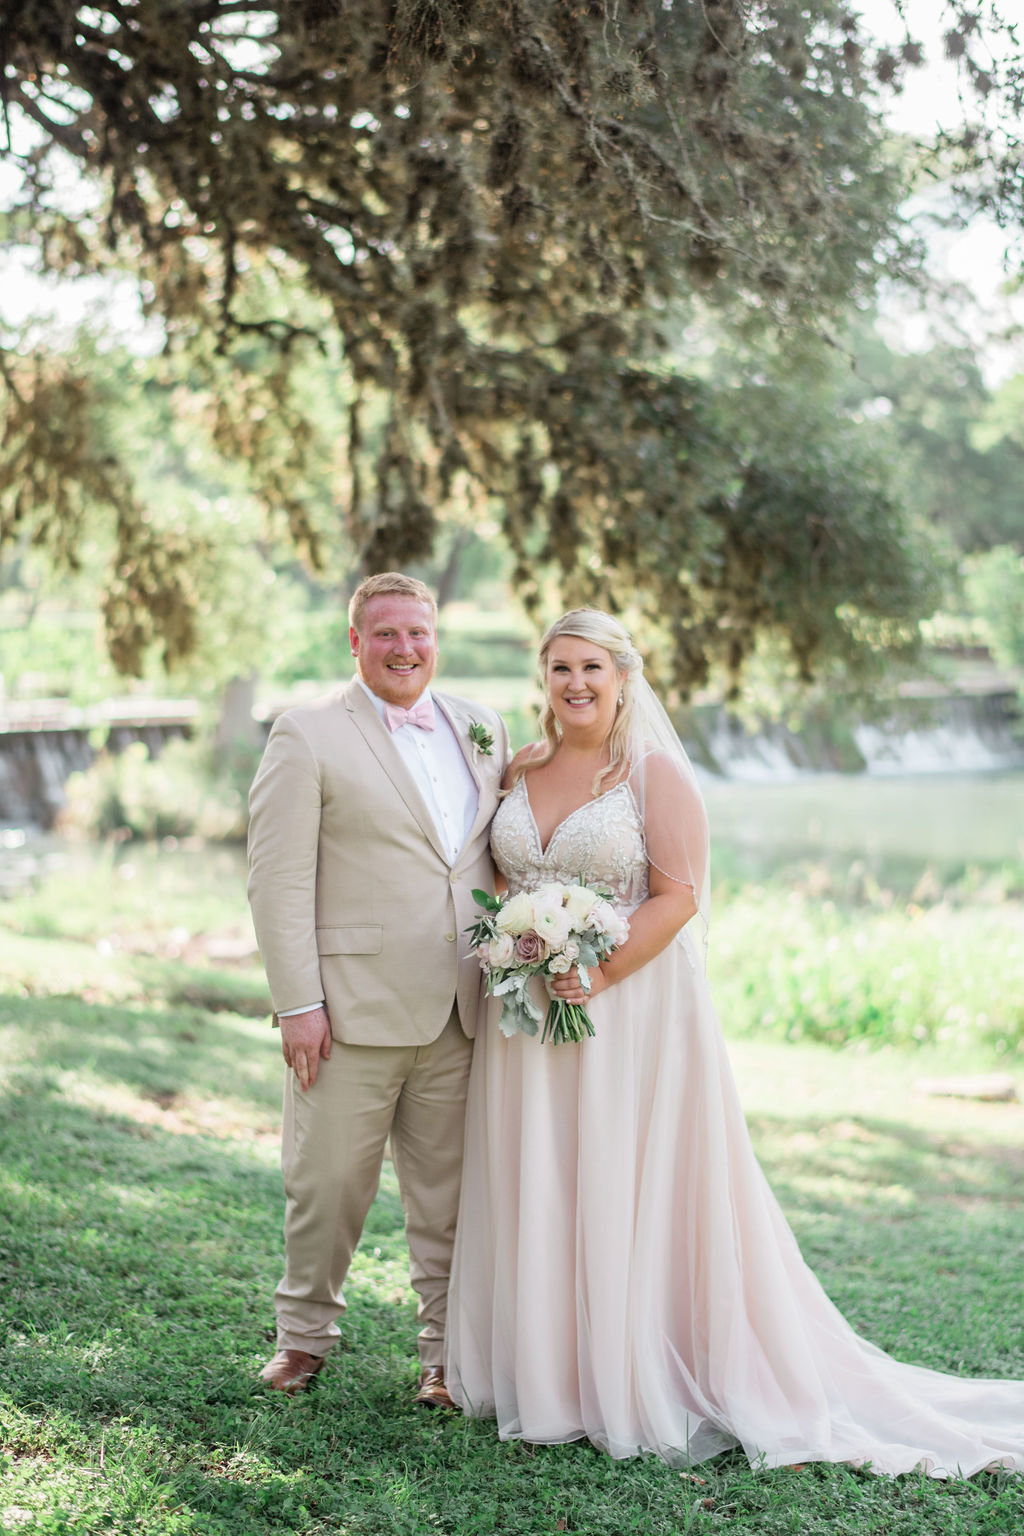 Hannah&JeremyWedding-Bride&Groom-AprilMaeCreative-11